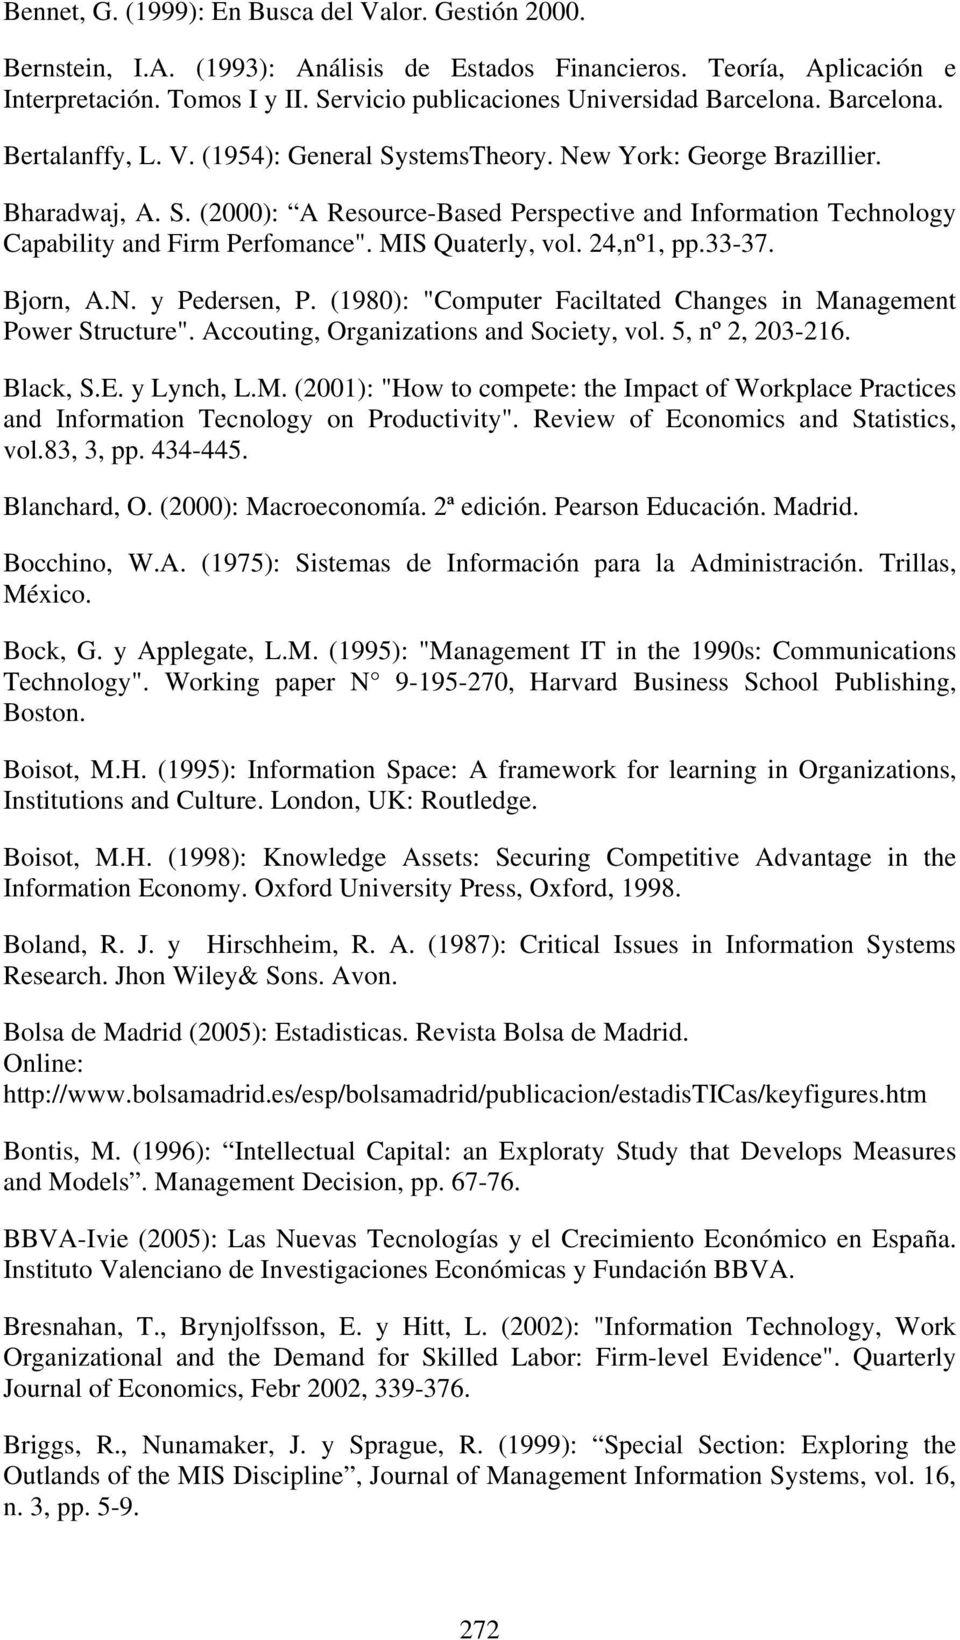 "MIS Quaterly, vol. 24,nº1, pp.33-37. Bjorn, A.N. y Pedersen, P. (1980): ""Computer Faciltated Changes in Management Power Structure"". Accouting, Organizations and Society, vol. 5, nº 2, 203-216."